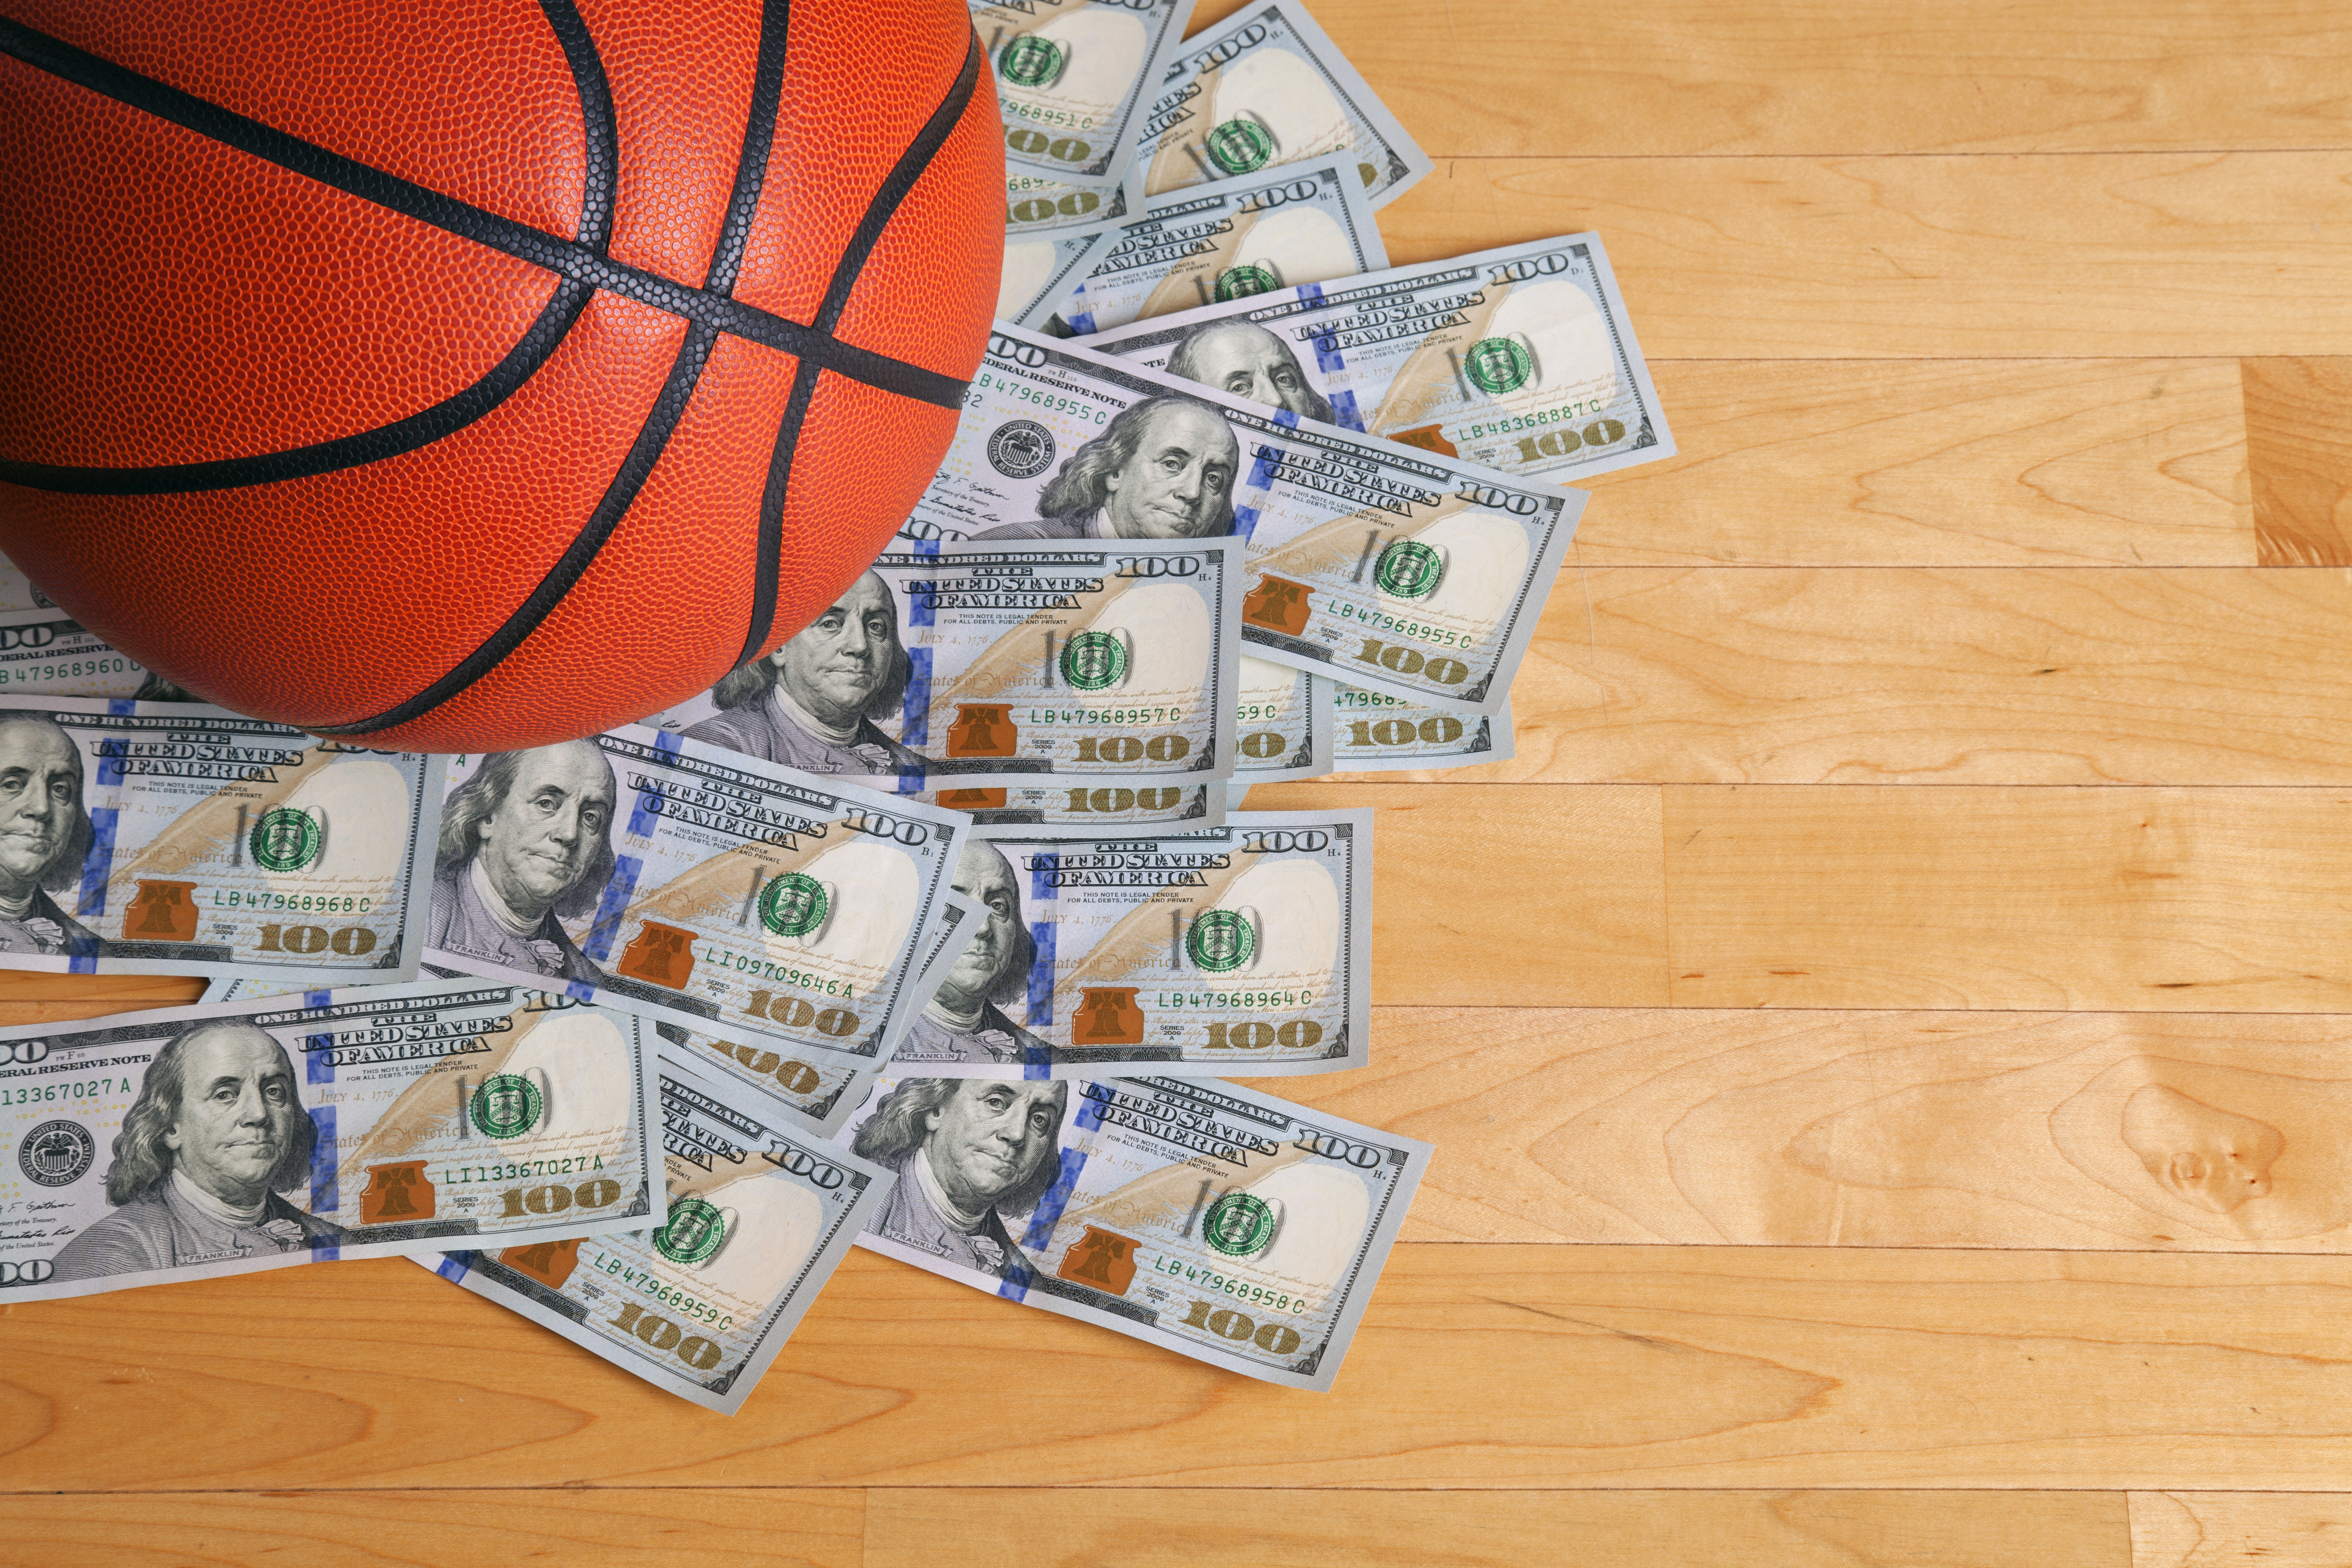 basketball on top of heap of cash